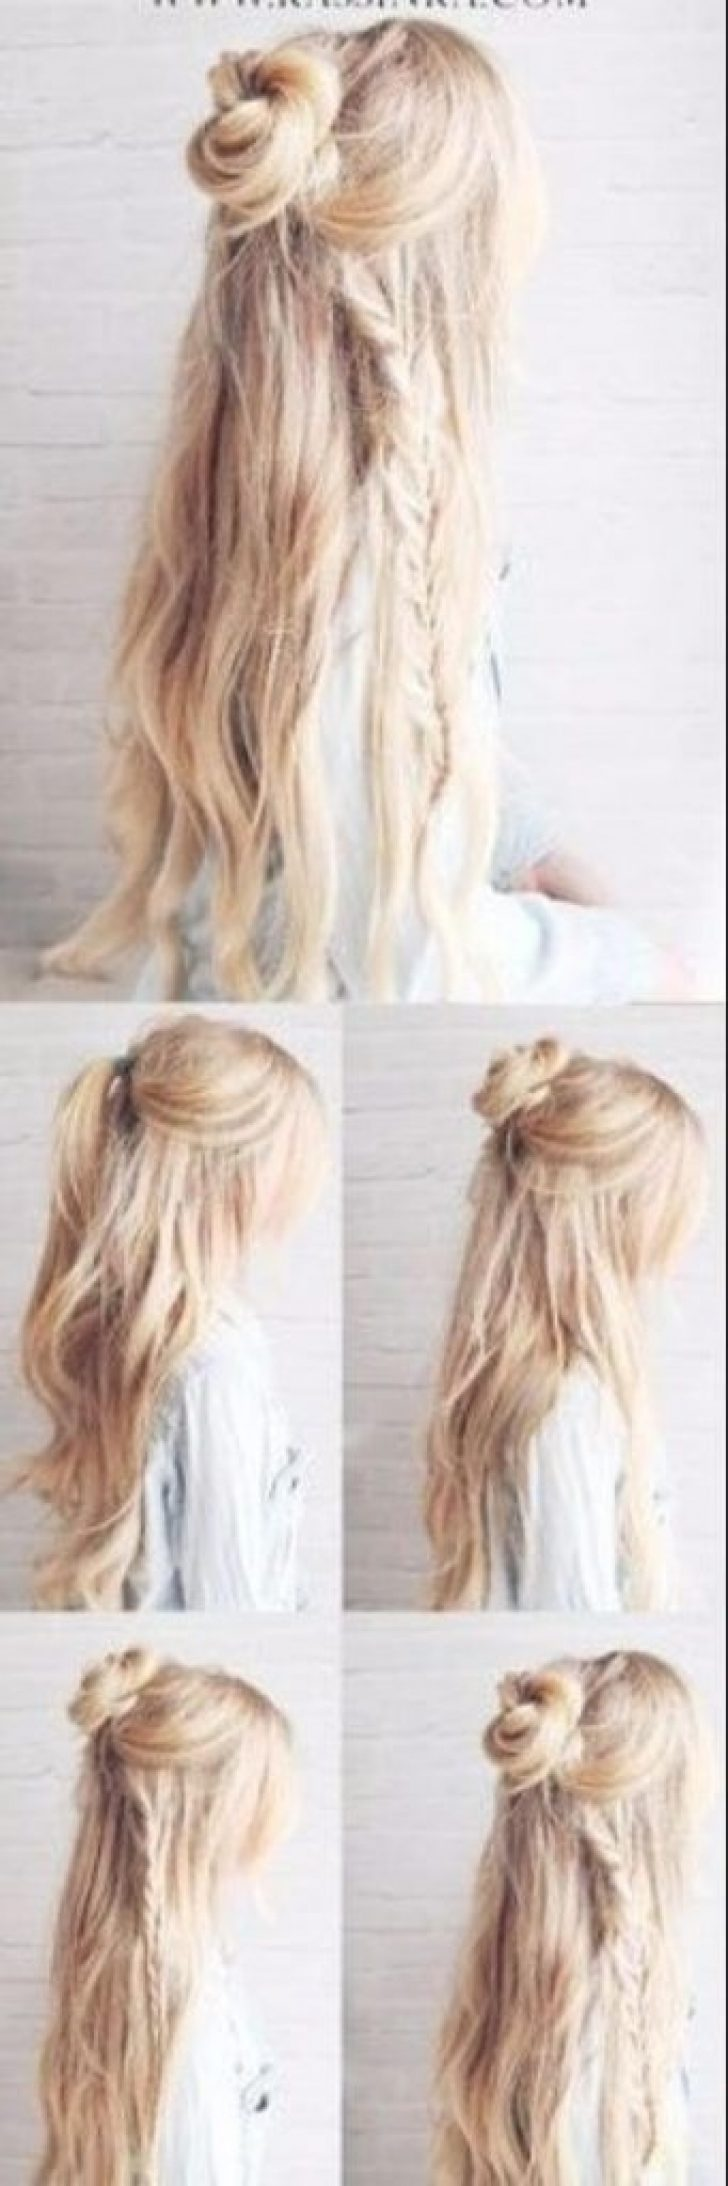 Permalink to 11 Beautiful Easy Hairstyles For Long Hair No Braids Gallery